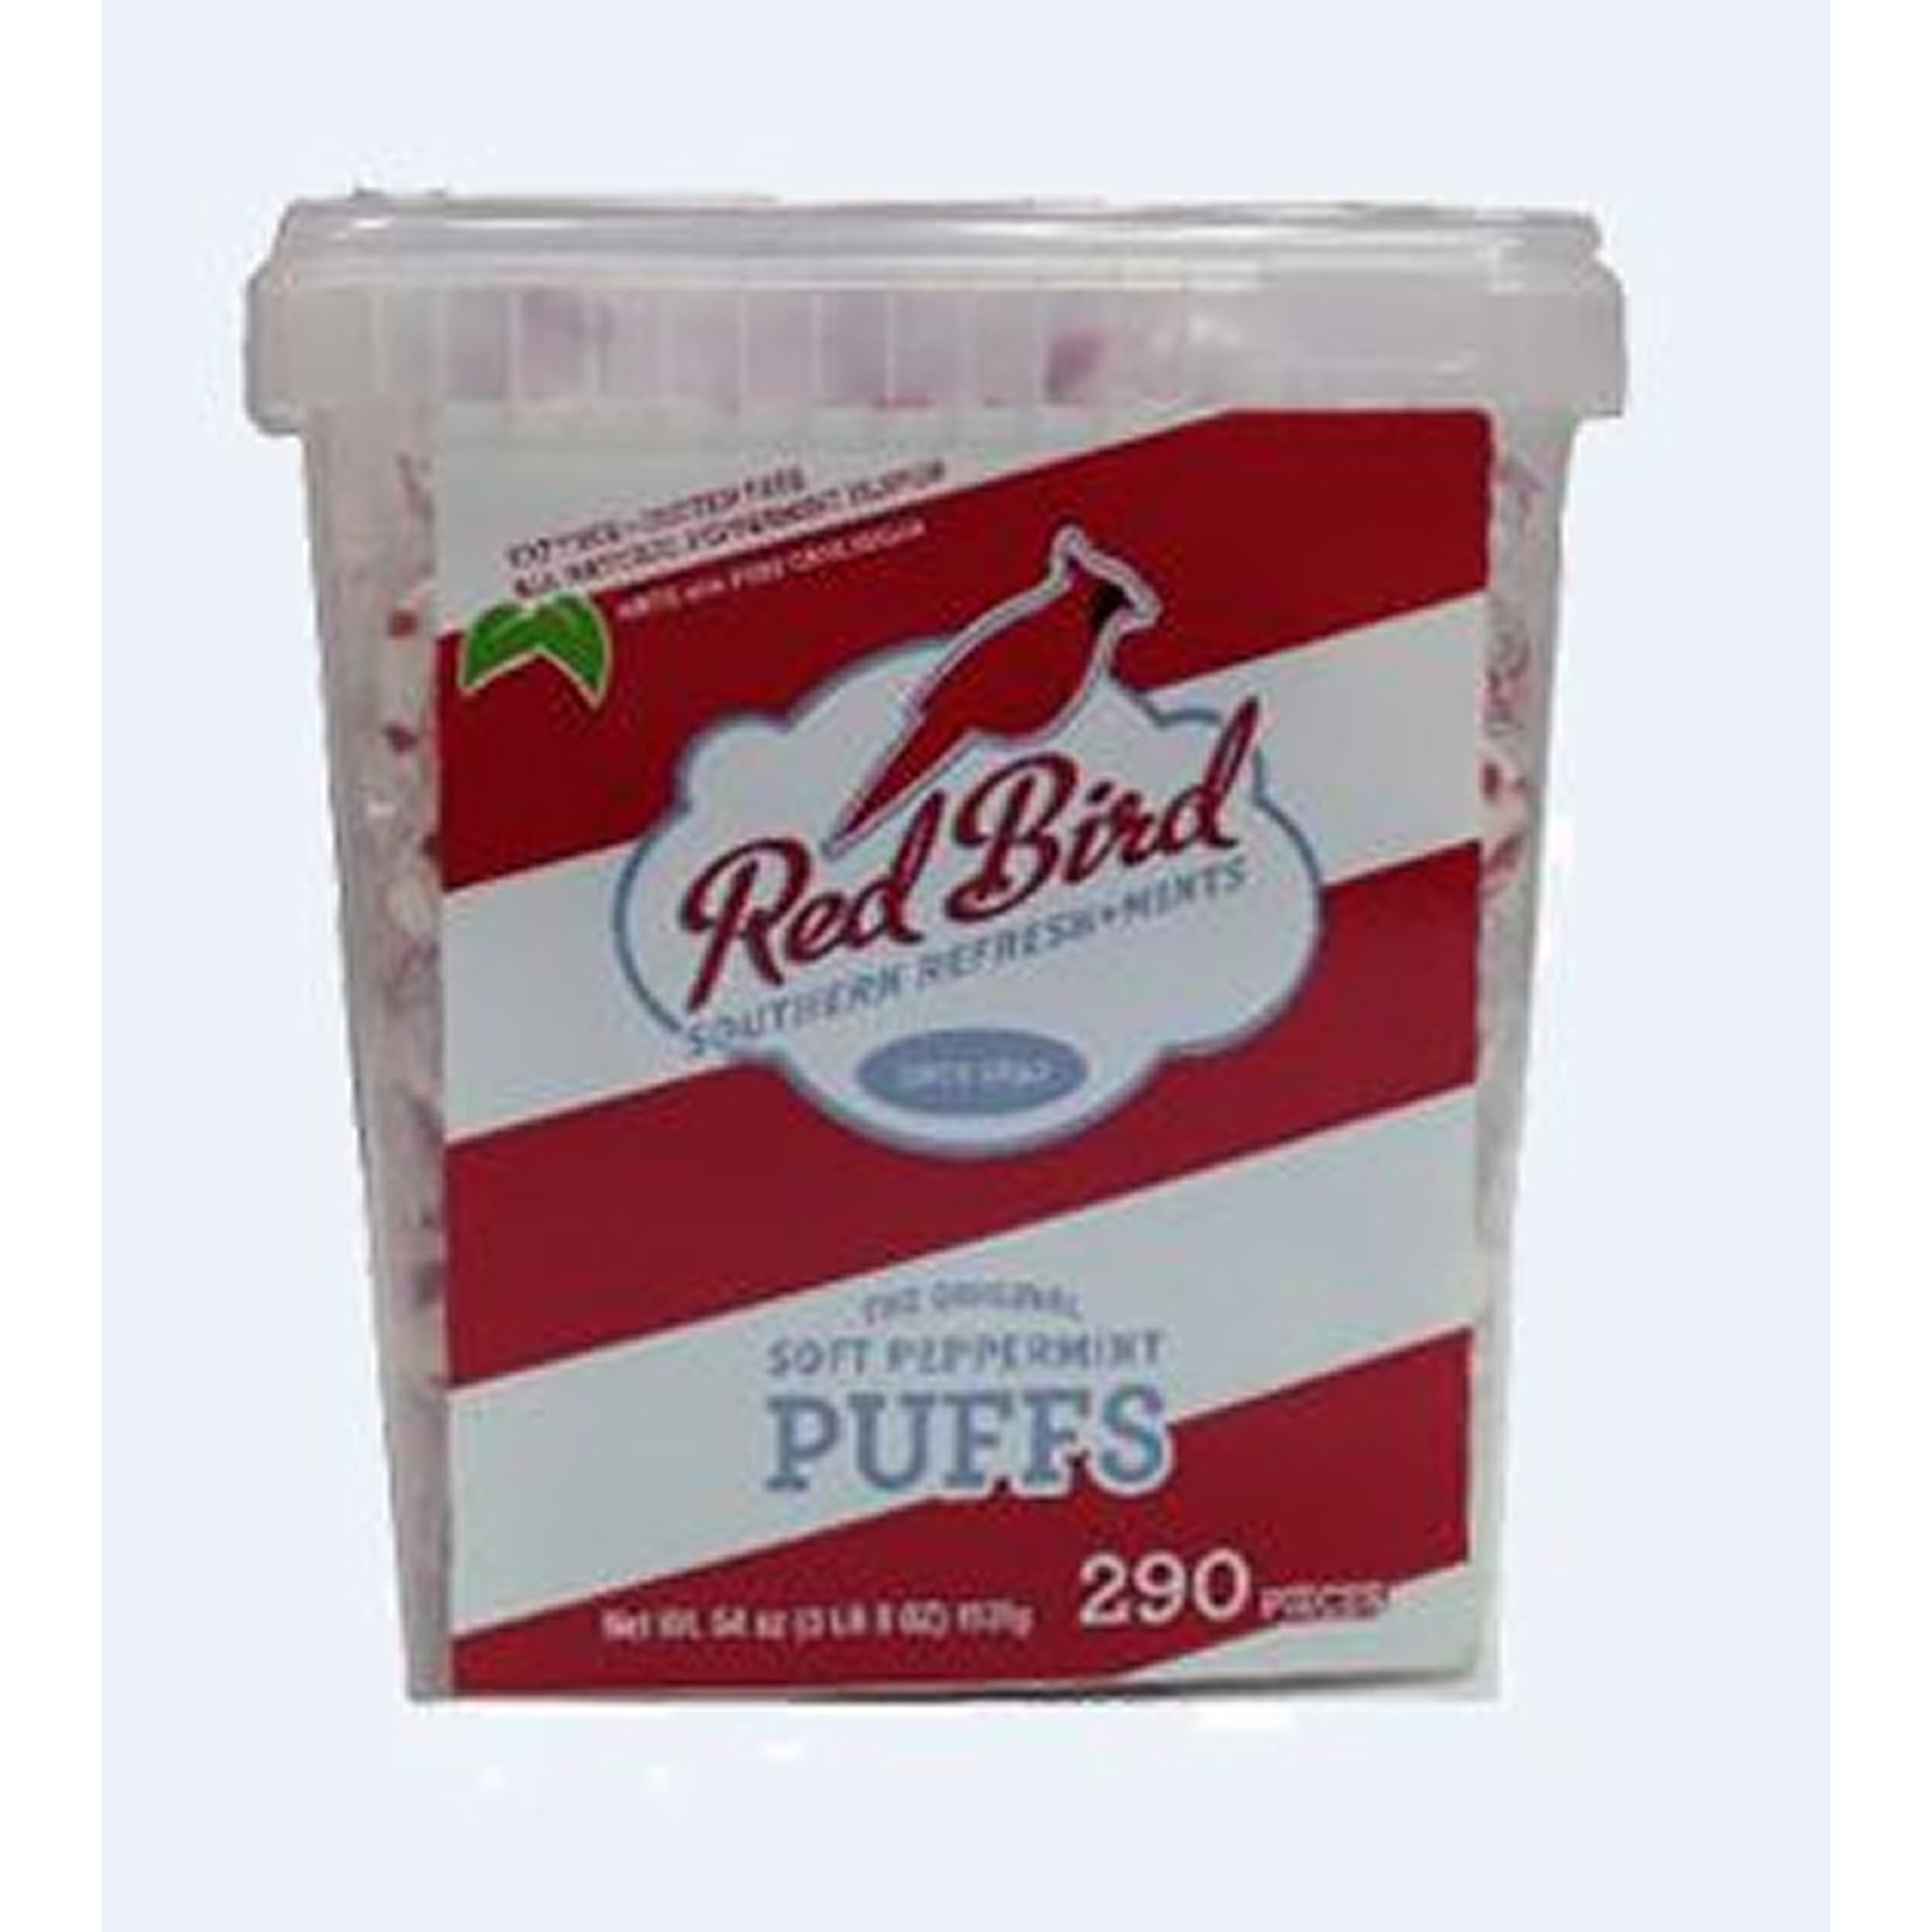 Piedmont Red Bird Peppermint Puffs, 290 ct. (pack of 2)